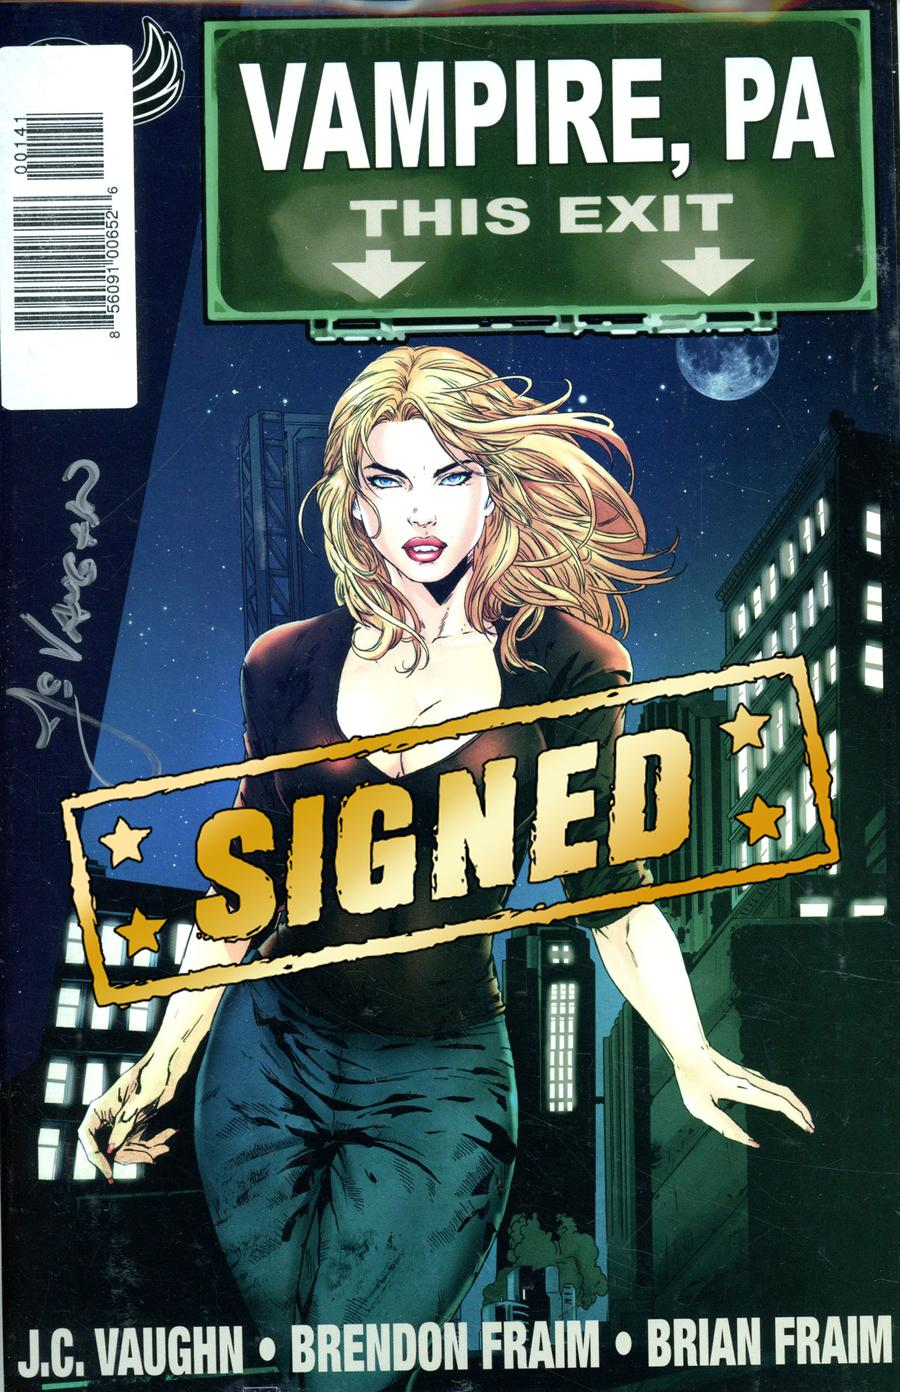 Vampire PA Bite Out Of Crime #1 Cover D Signed By JC Vaughn